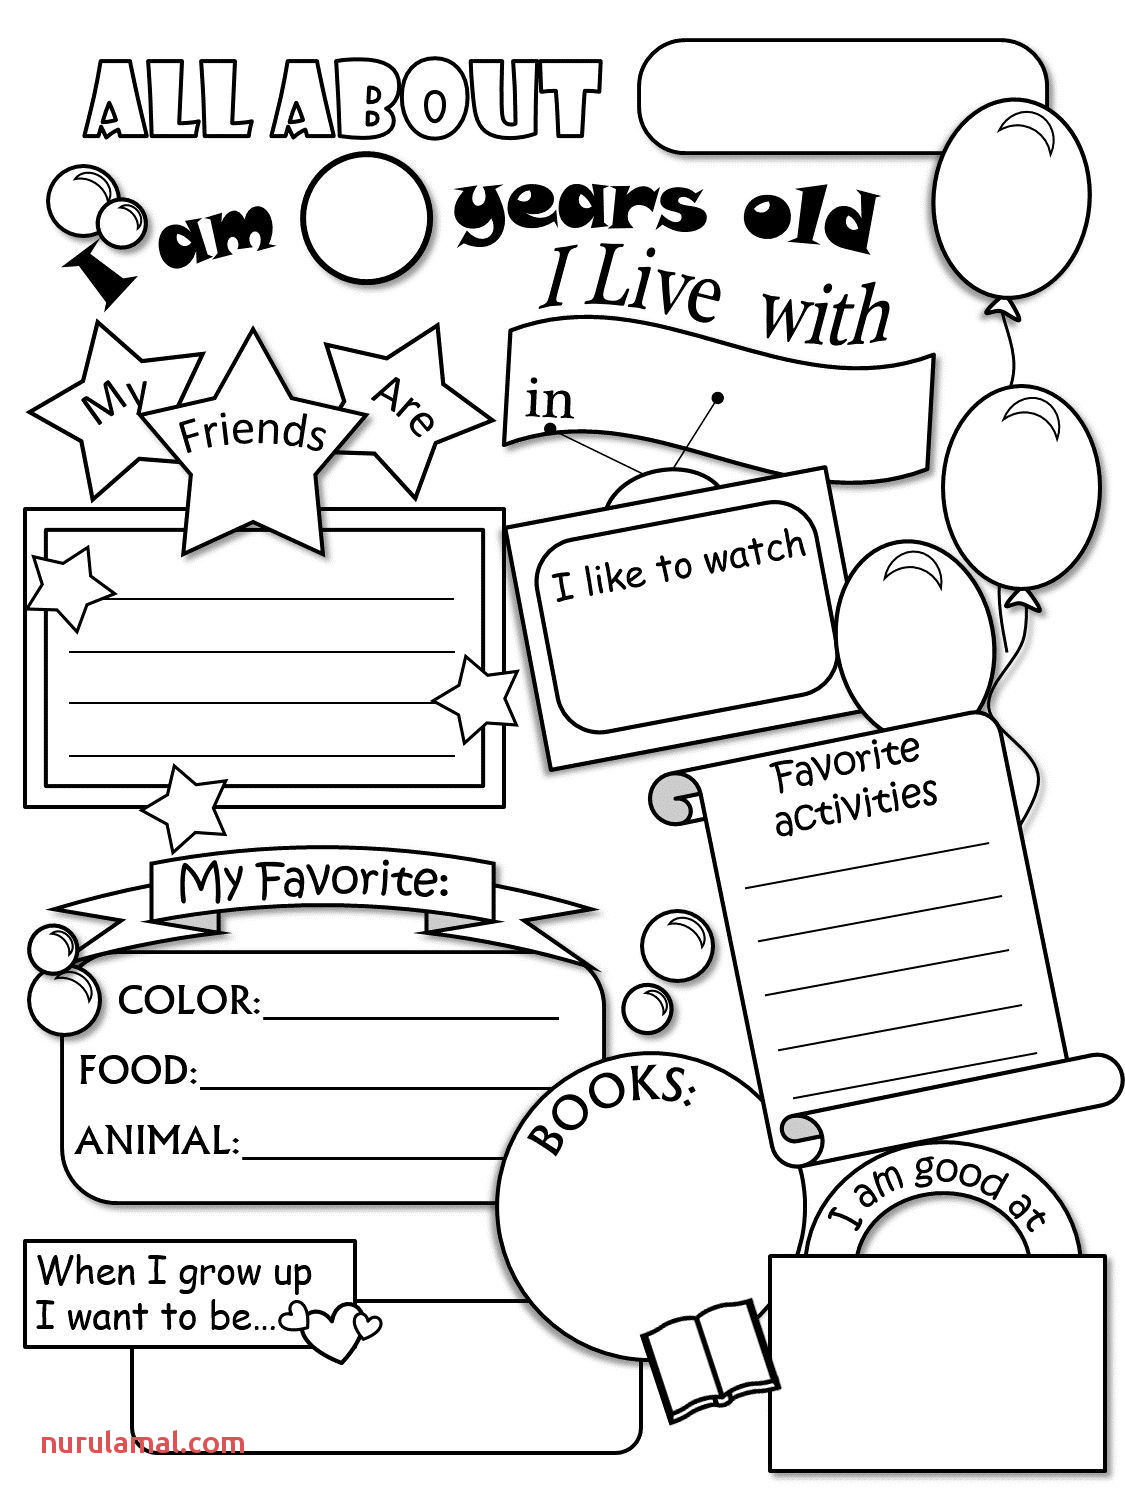 dot to worksheets for year olds free printable phonics adults fun pr body diagram worksheet pdf driver education 1st grade addition and subtraction print bear coloring preschool mathematics